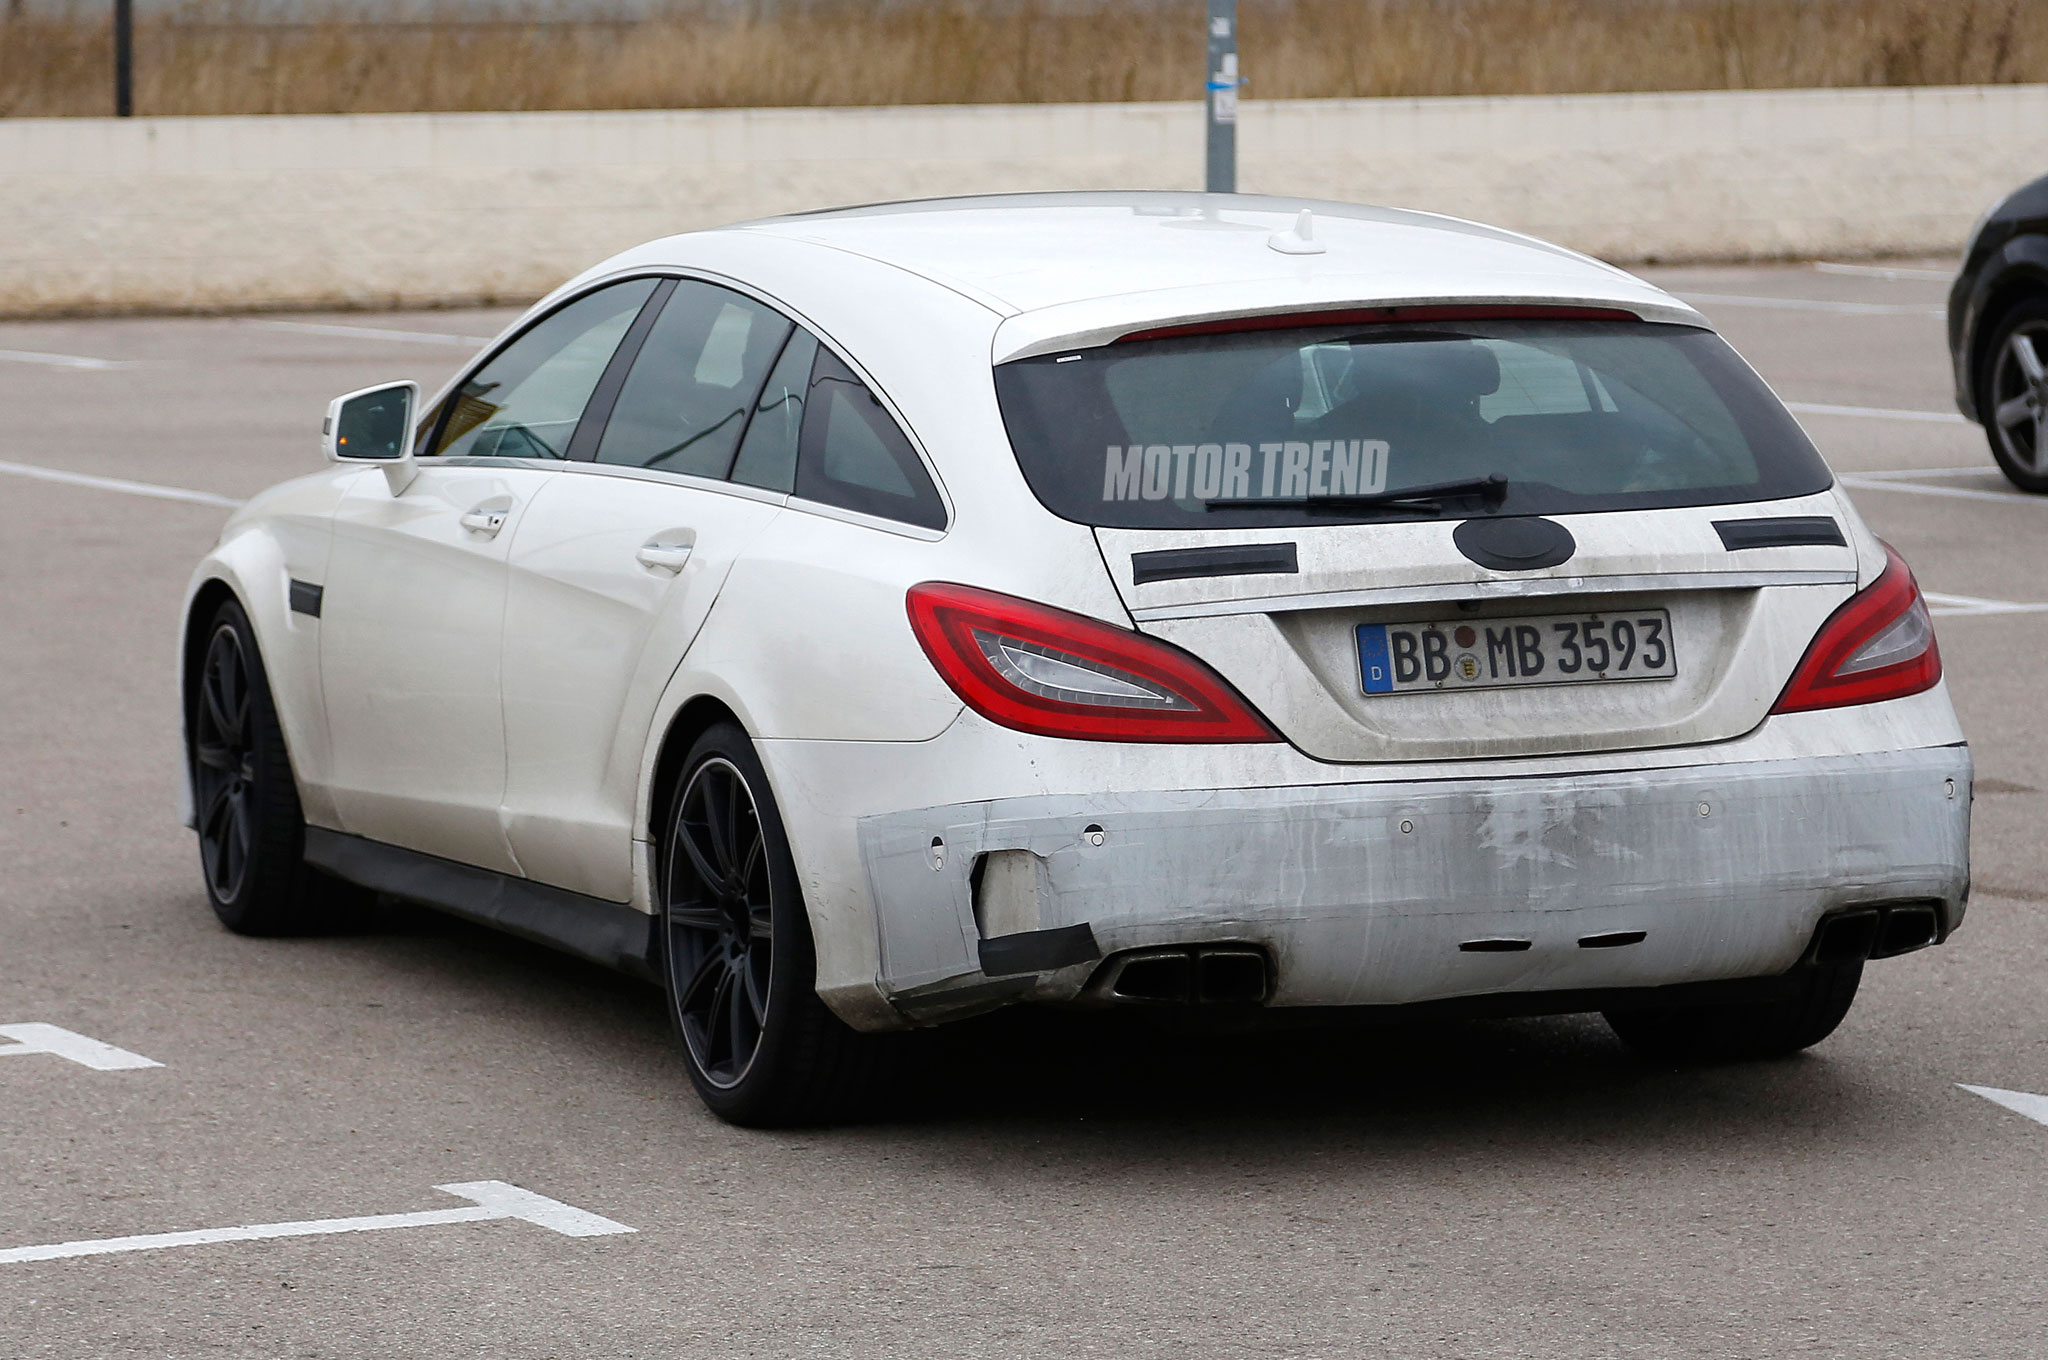 Spied: Mercedes-Benz CLS63 AMG Shooting Brake Hides Its Face